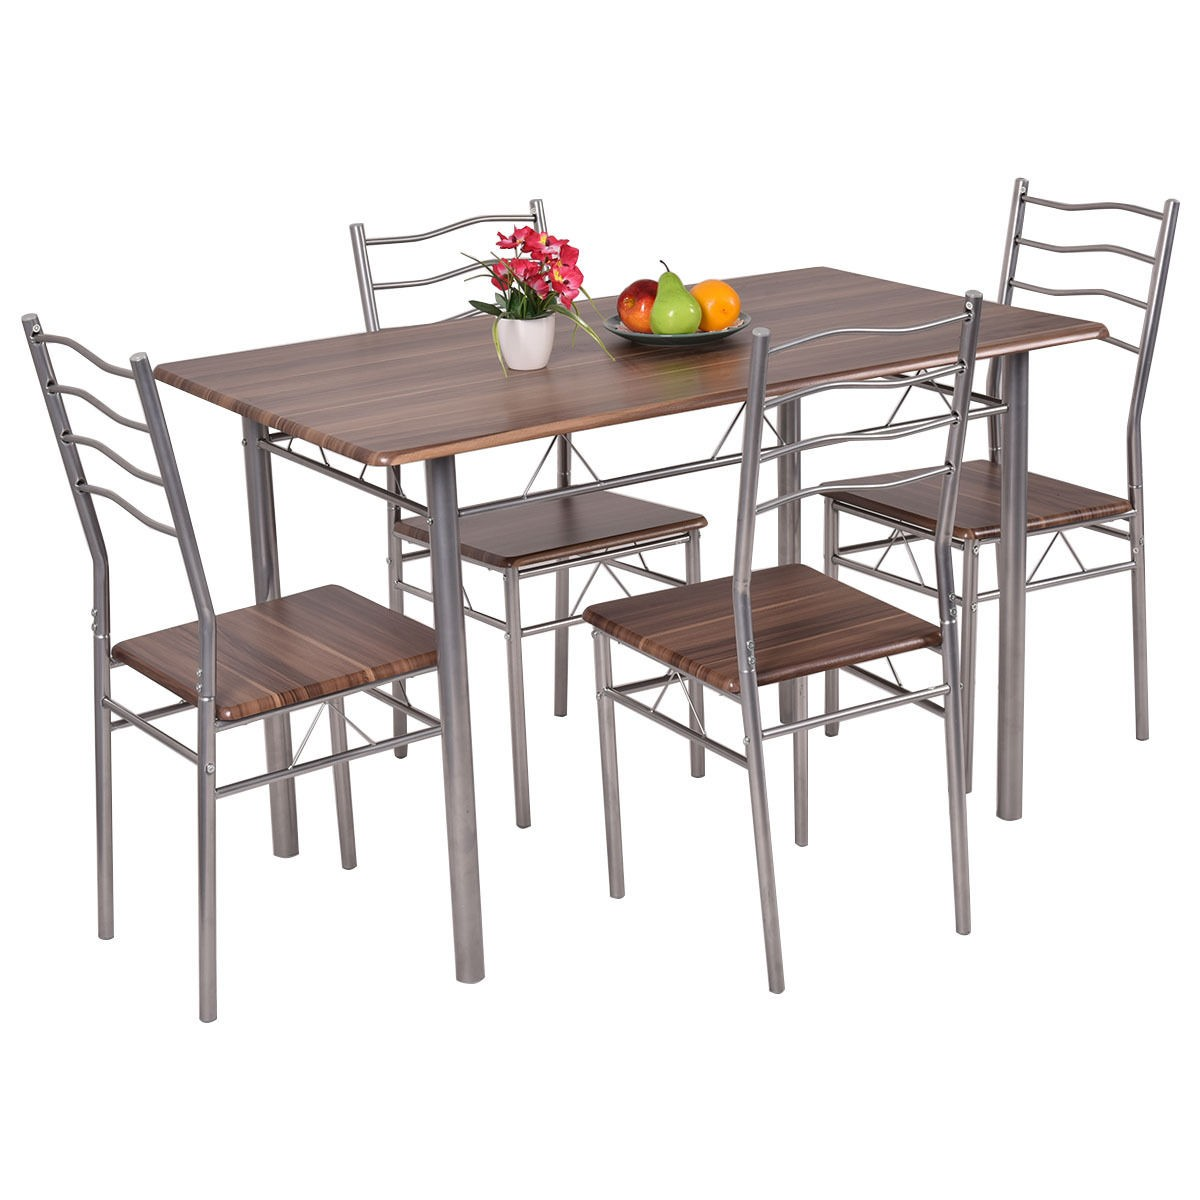 5 piece dining set wood metal table and 4 chairs kitchen modern furniture us ebay - Steel kitchen tables ...